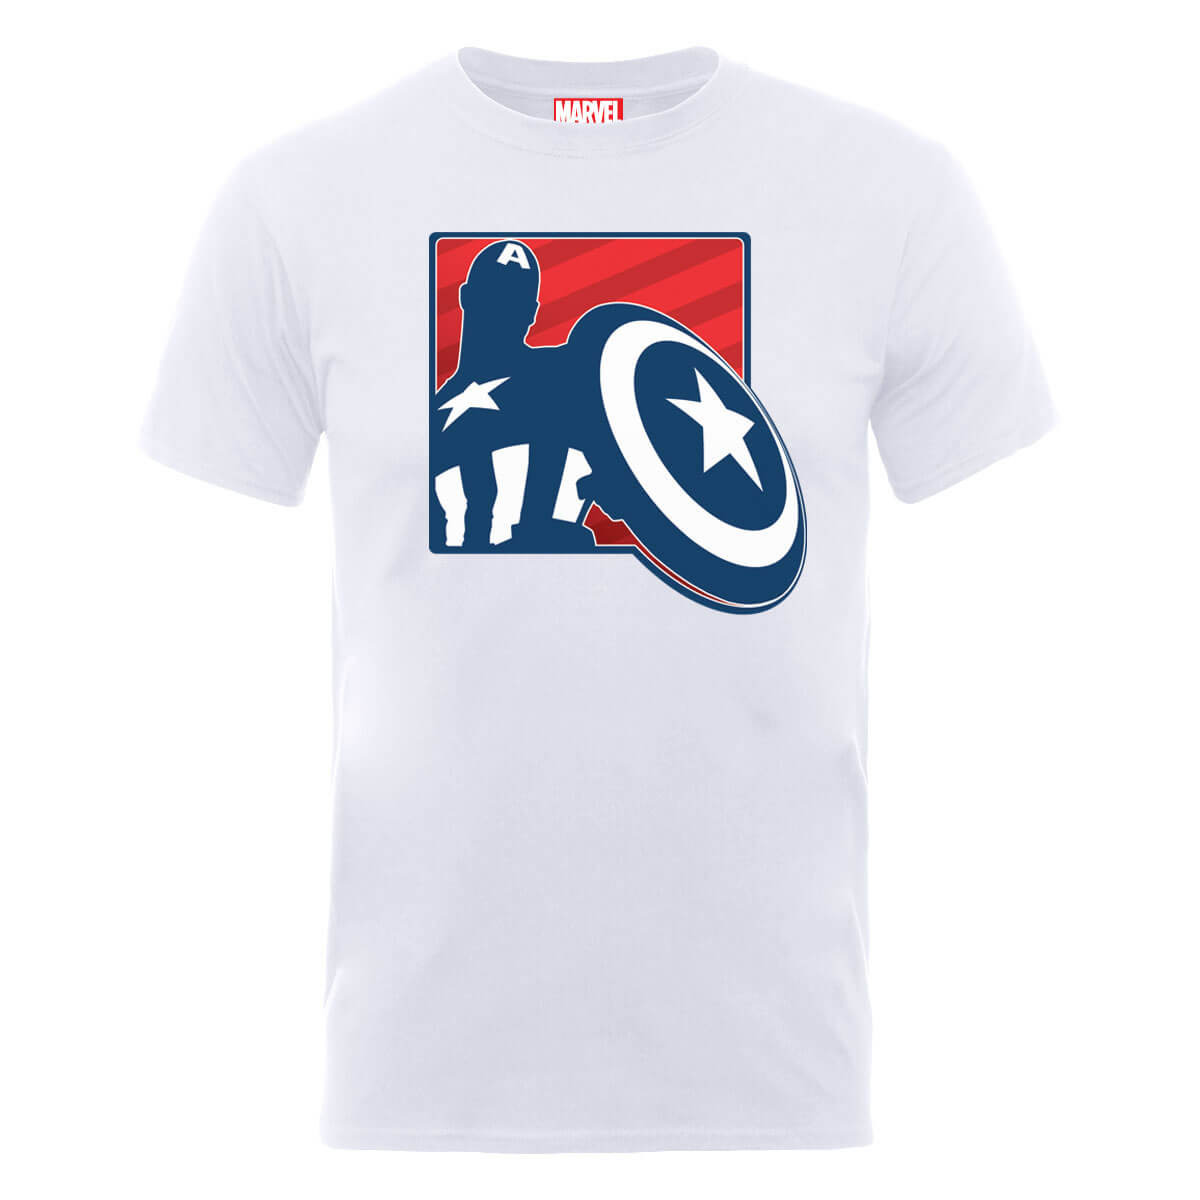 Marvel Avengers Assemble Captain America Outline Badge T-Shirt - White